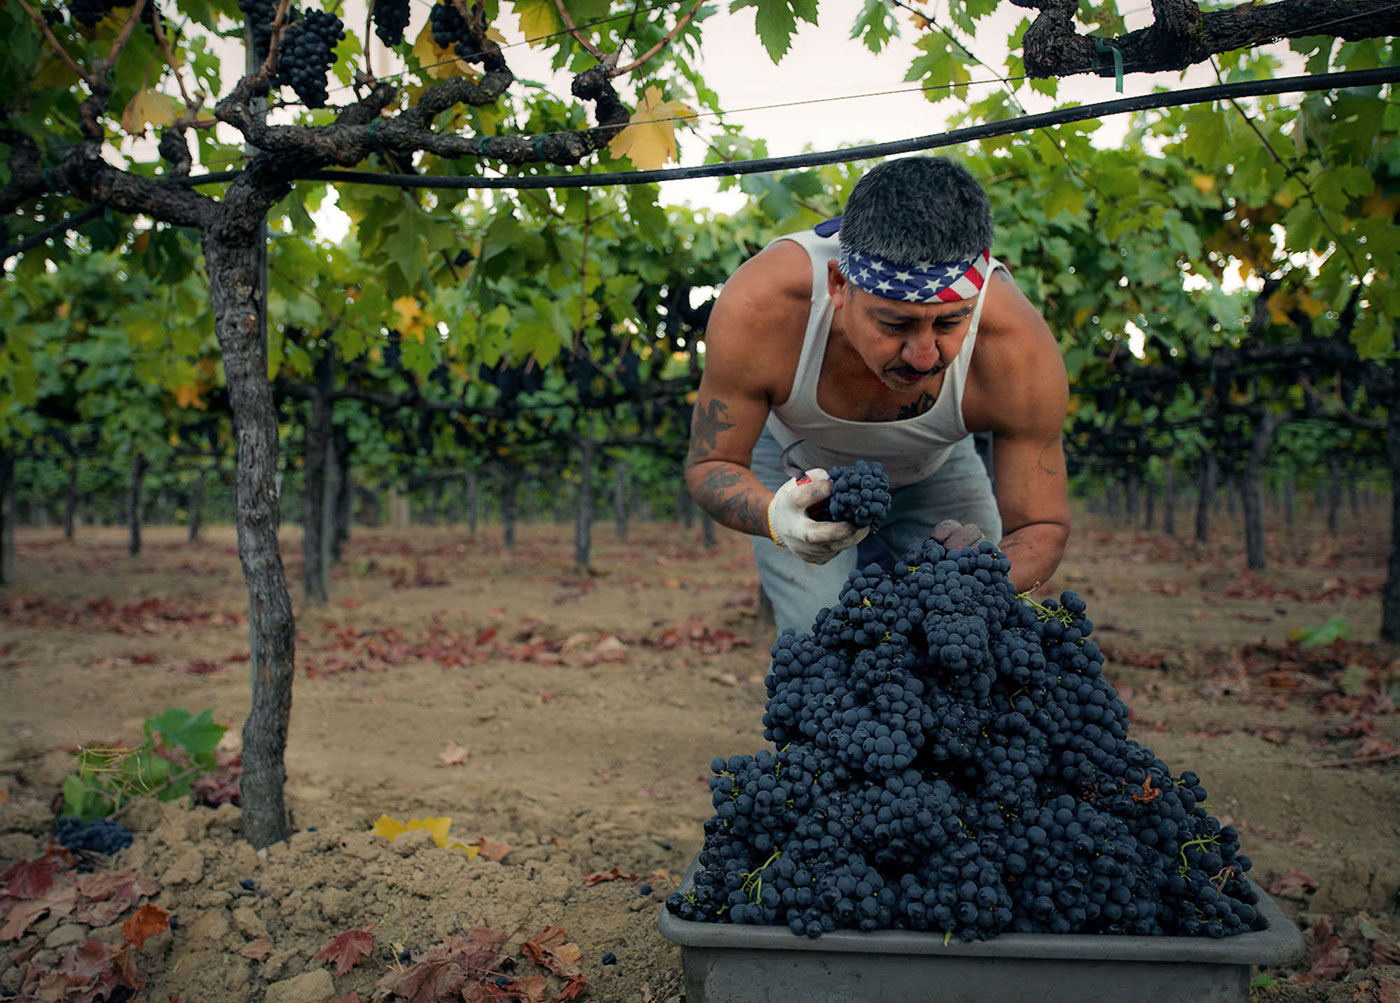 Frog's Leap - Martin Corro, Garden Zinfandel Vineyard - September 2014